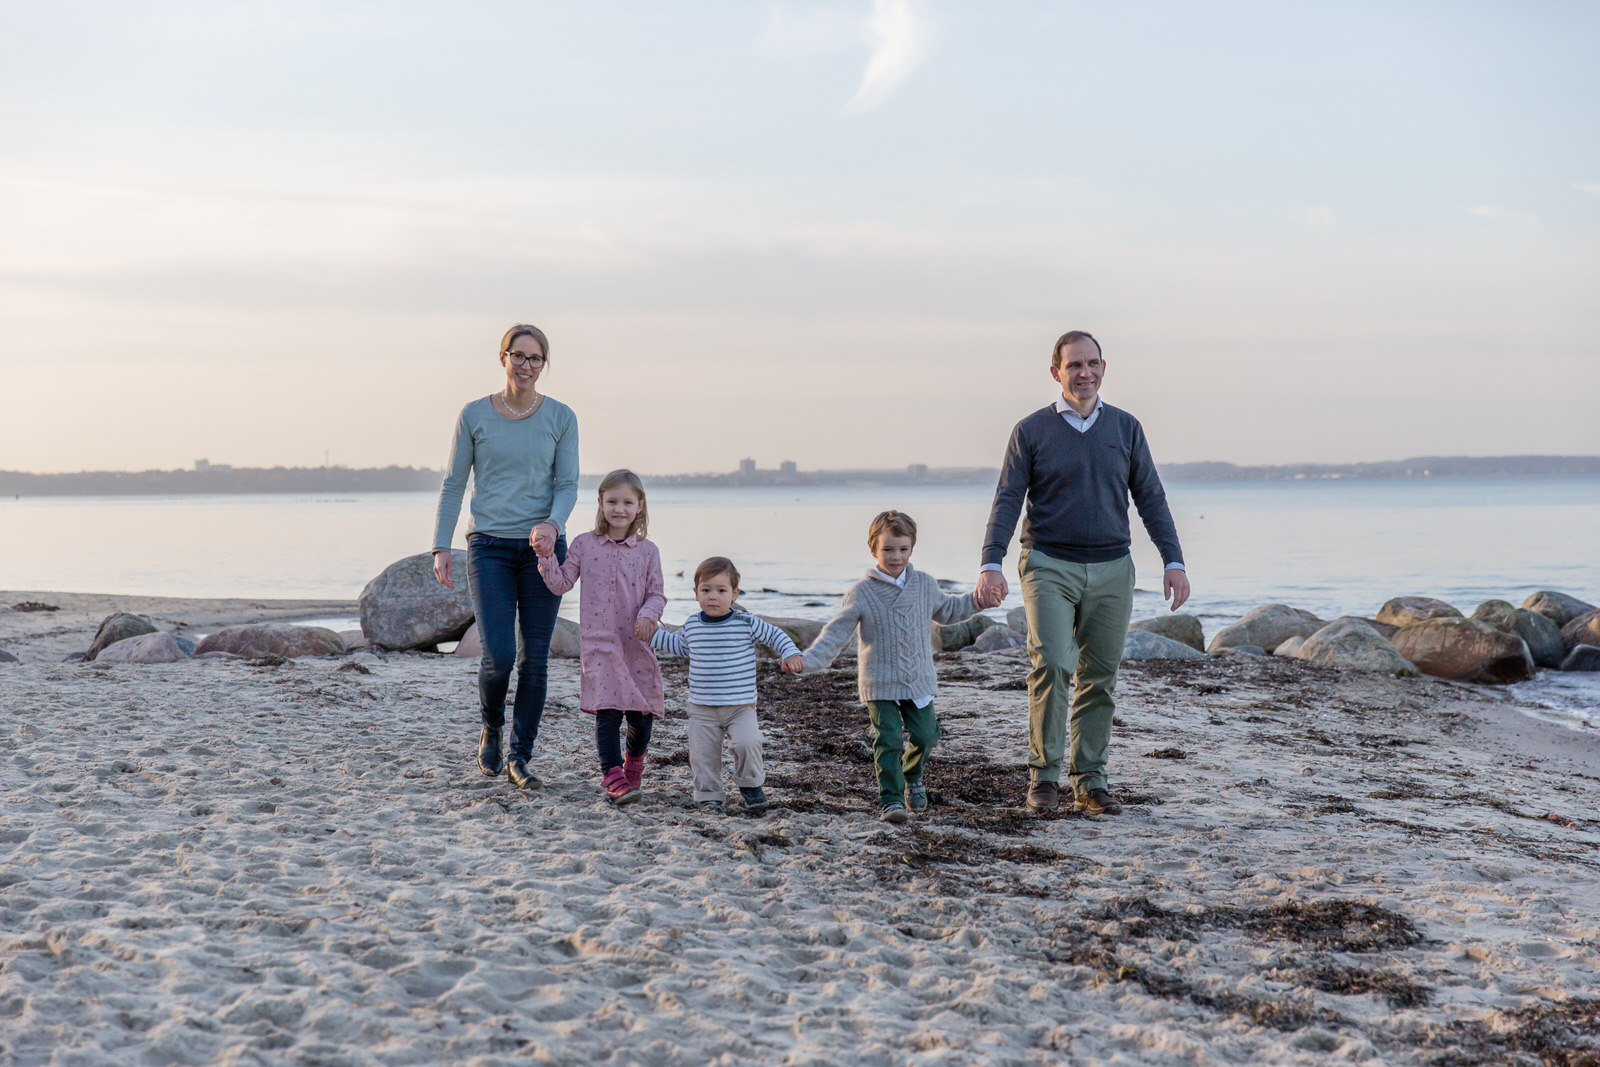 Familien-Shooting am Strand